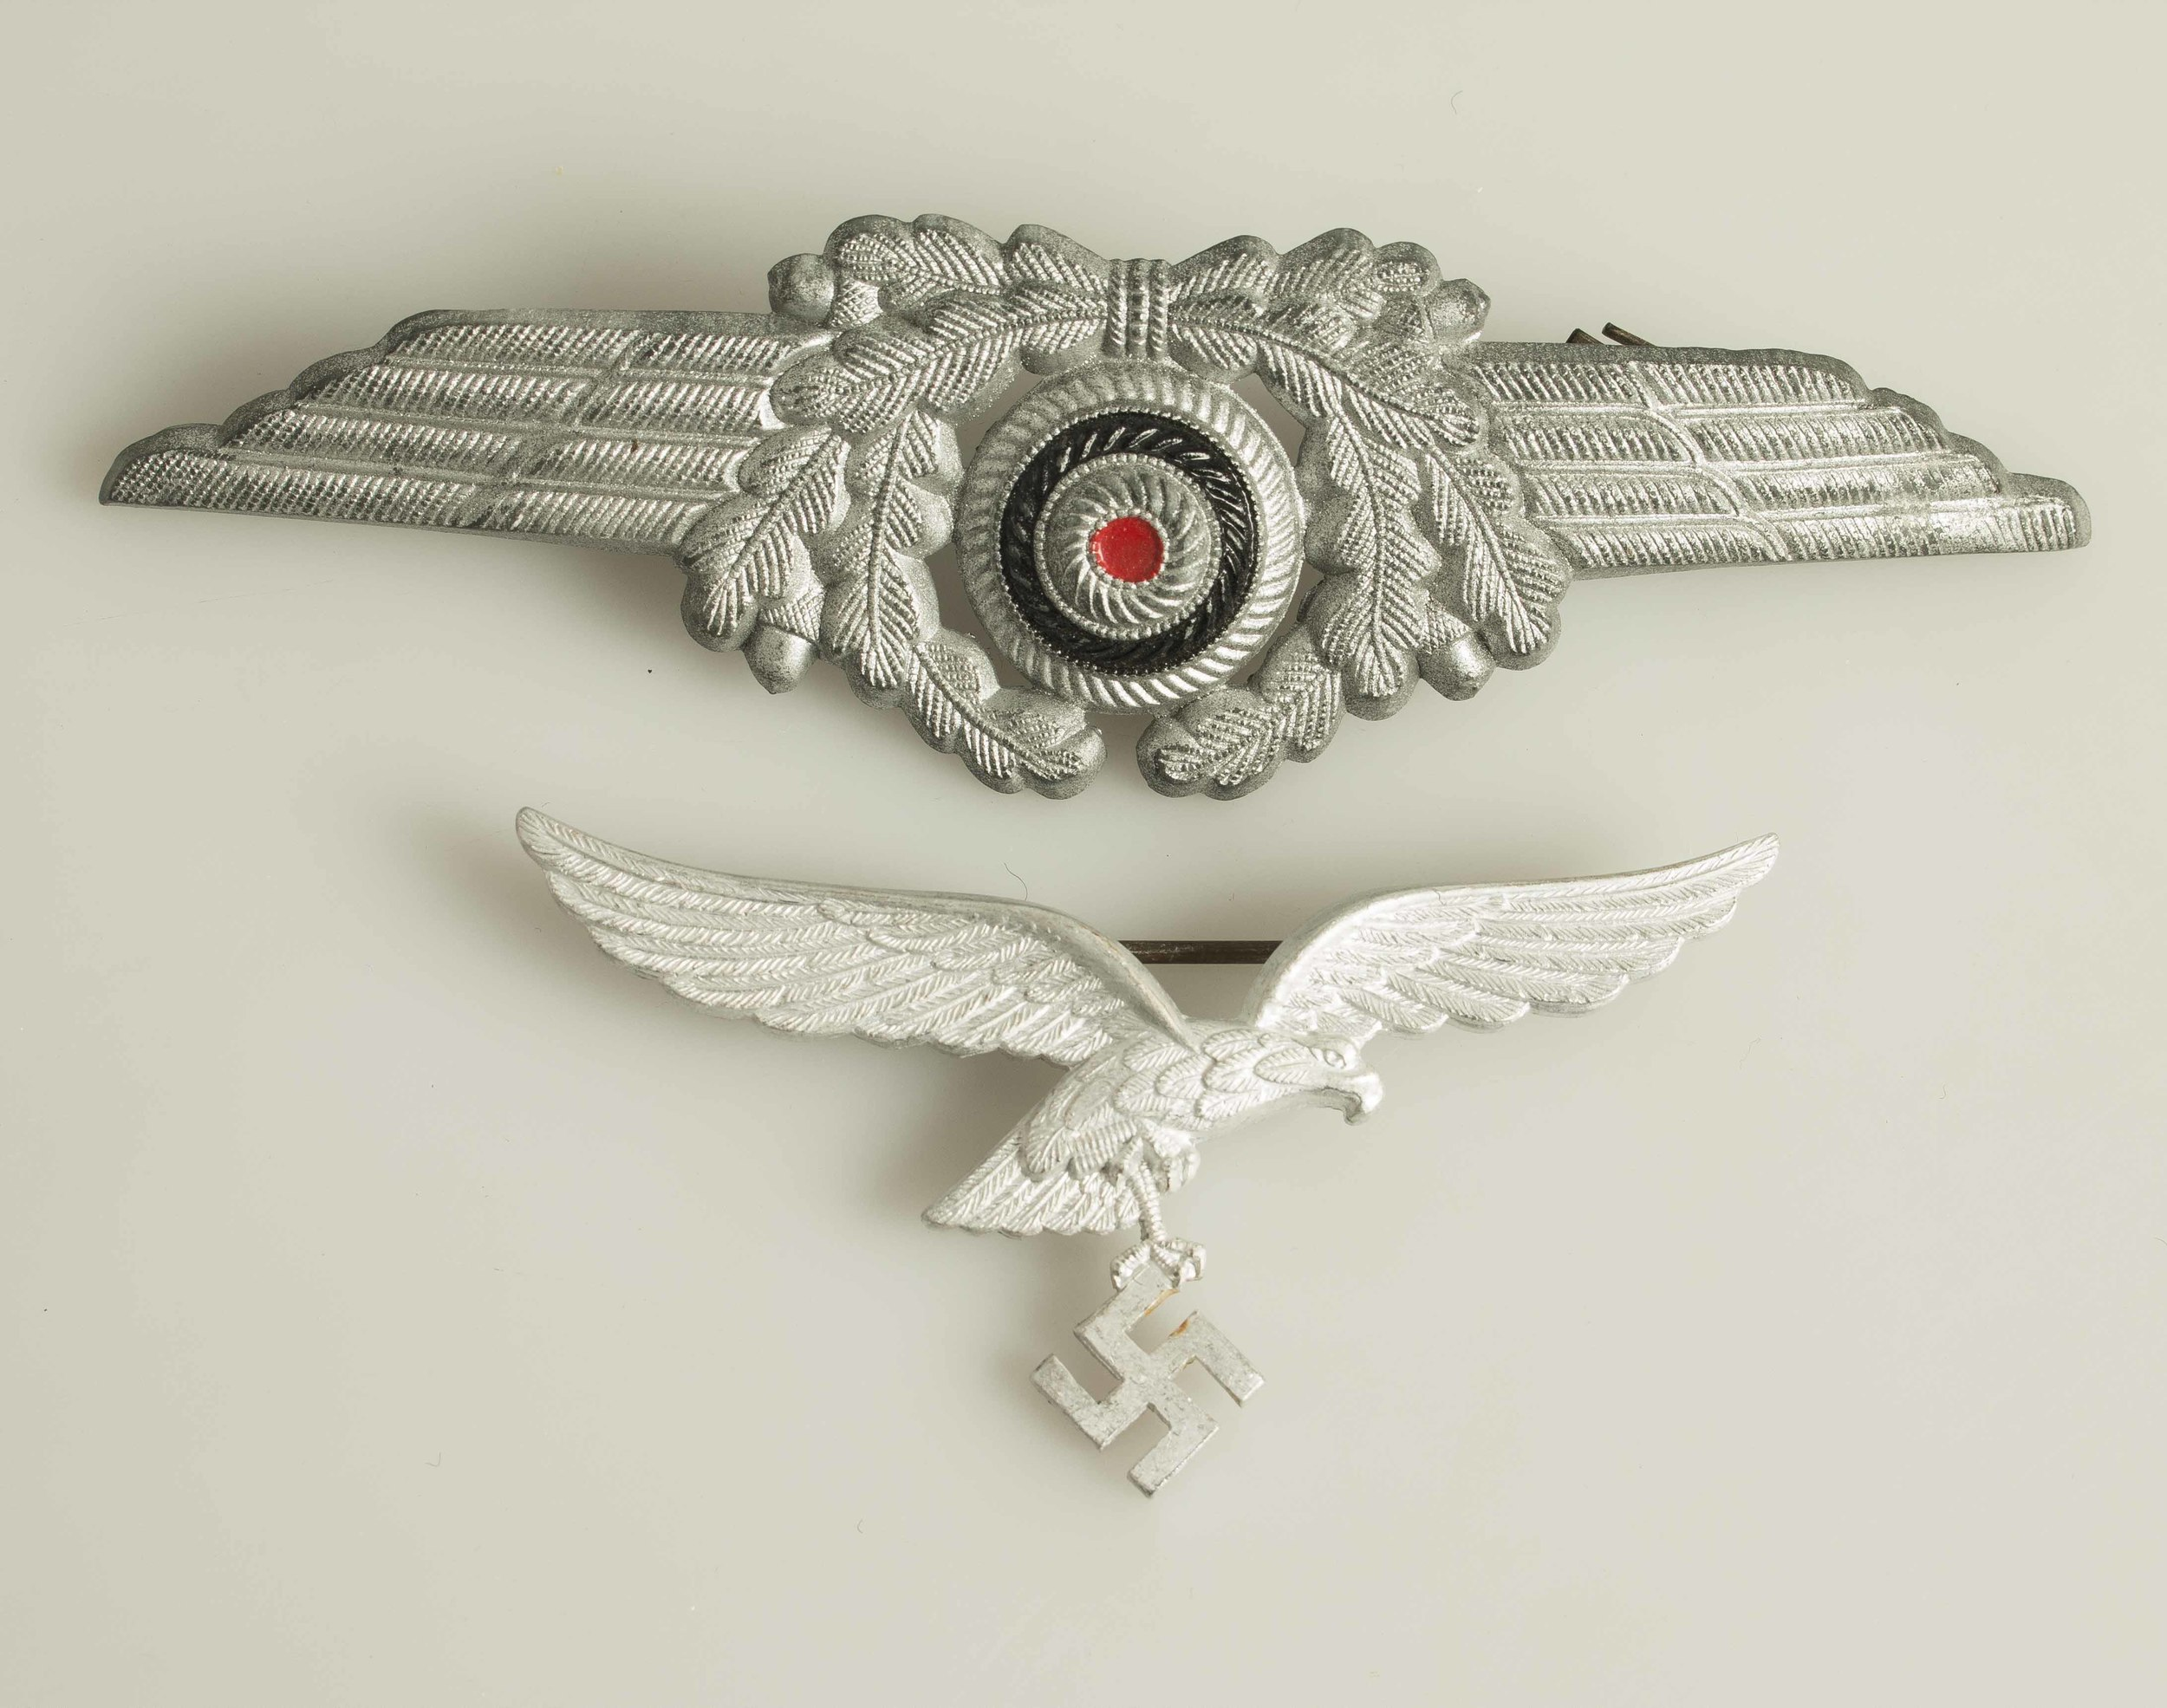 German WWII Luftwaffe and Gallantry Medals and Badges